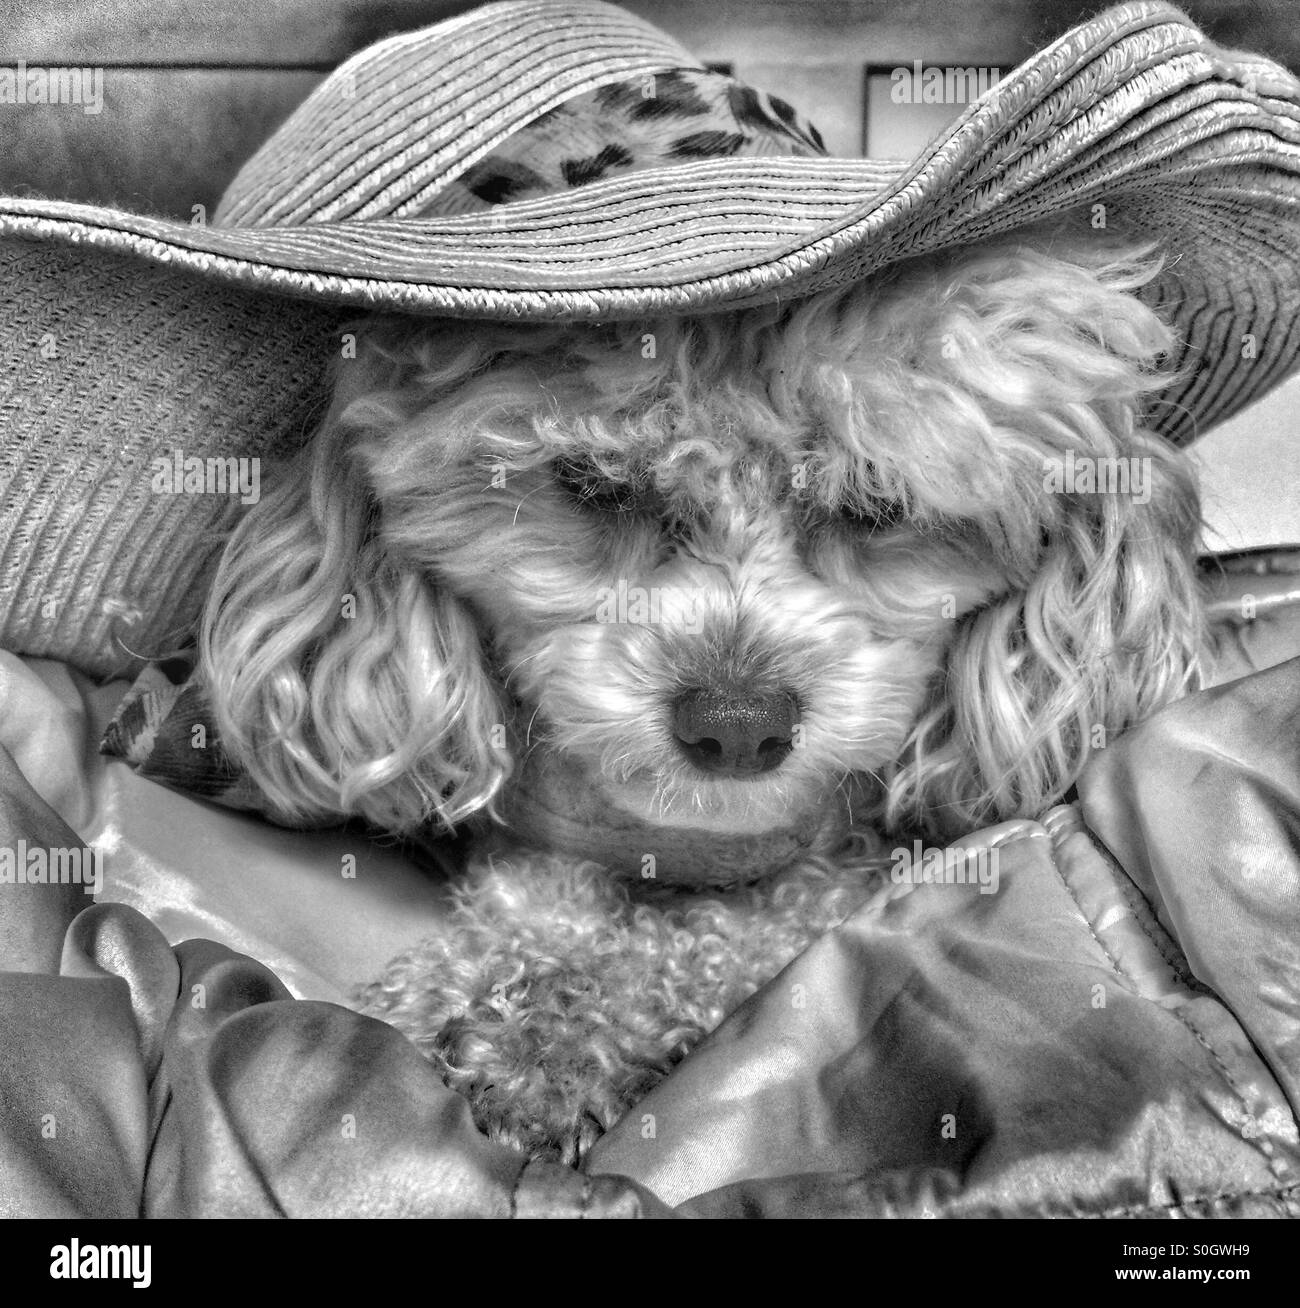 Poodle ready to go - Stock Image